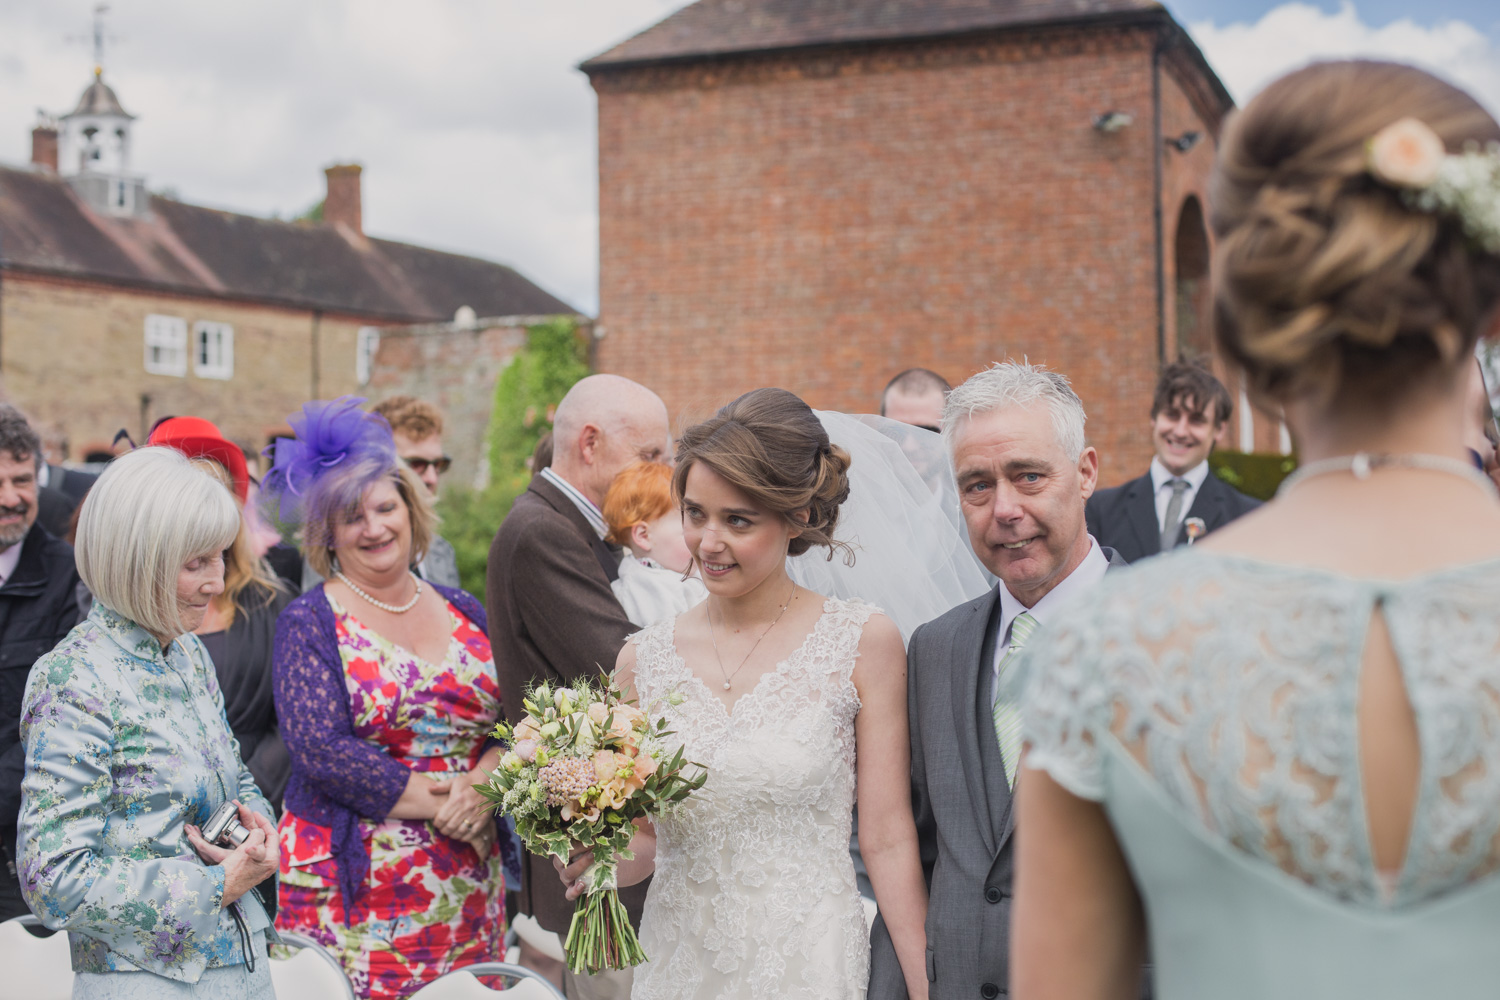 Delbury-Hall-Wedding-Photography-Shropshire-41.jpg